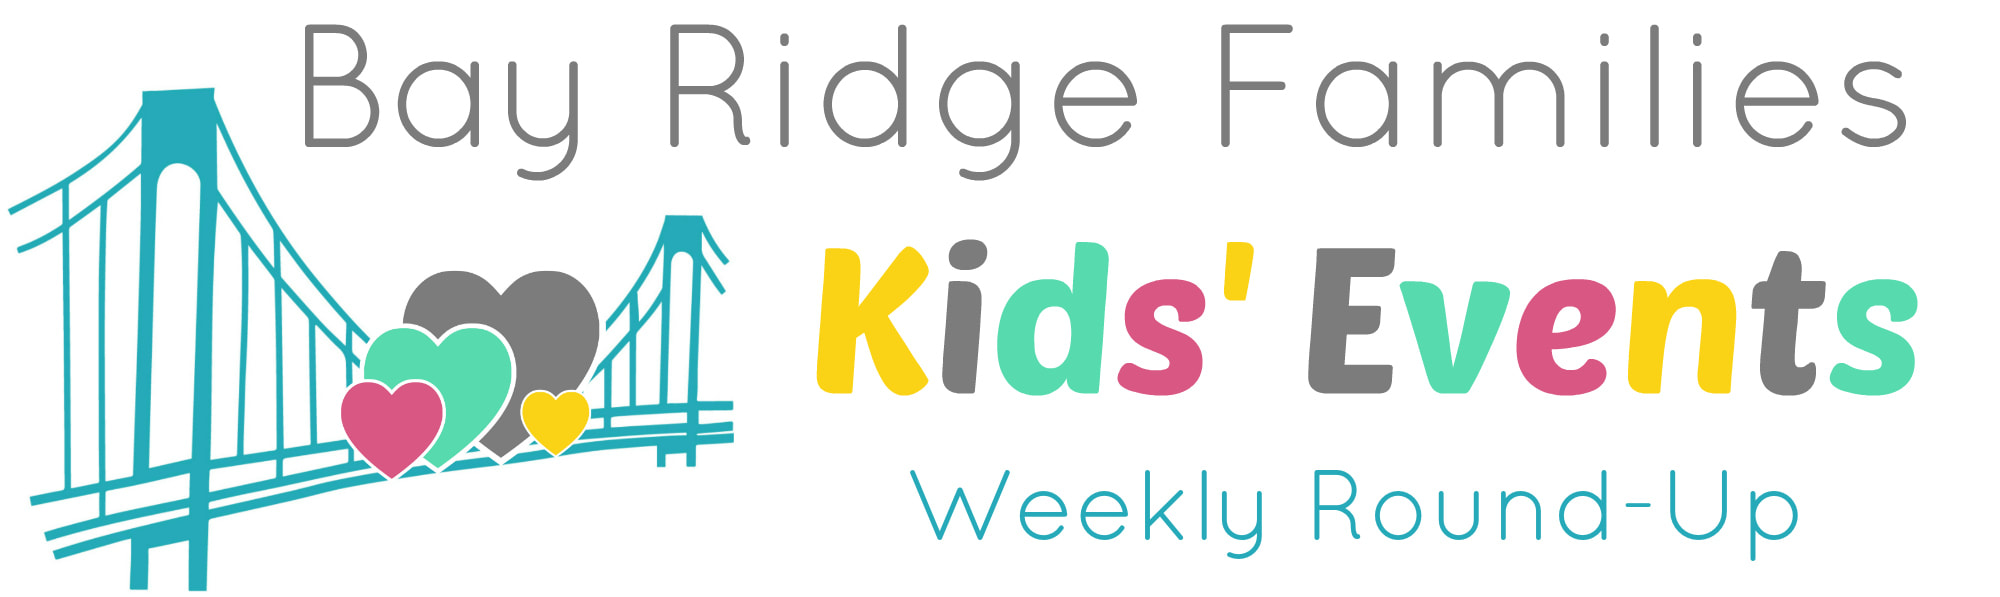 Bay Ridge Area Kids Events Roundup: Aug 31 - Sept 6